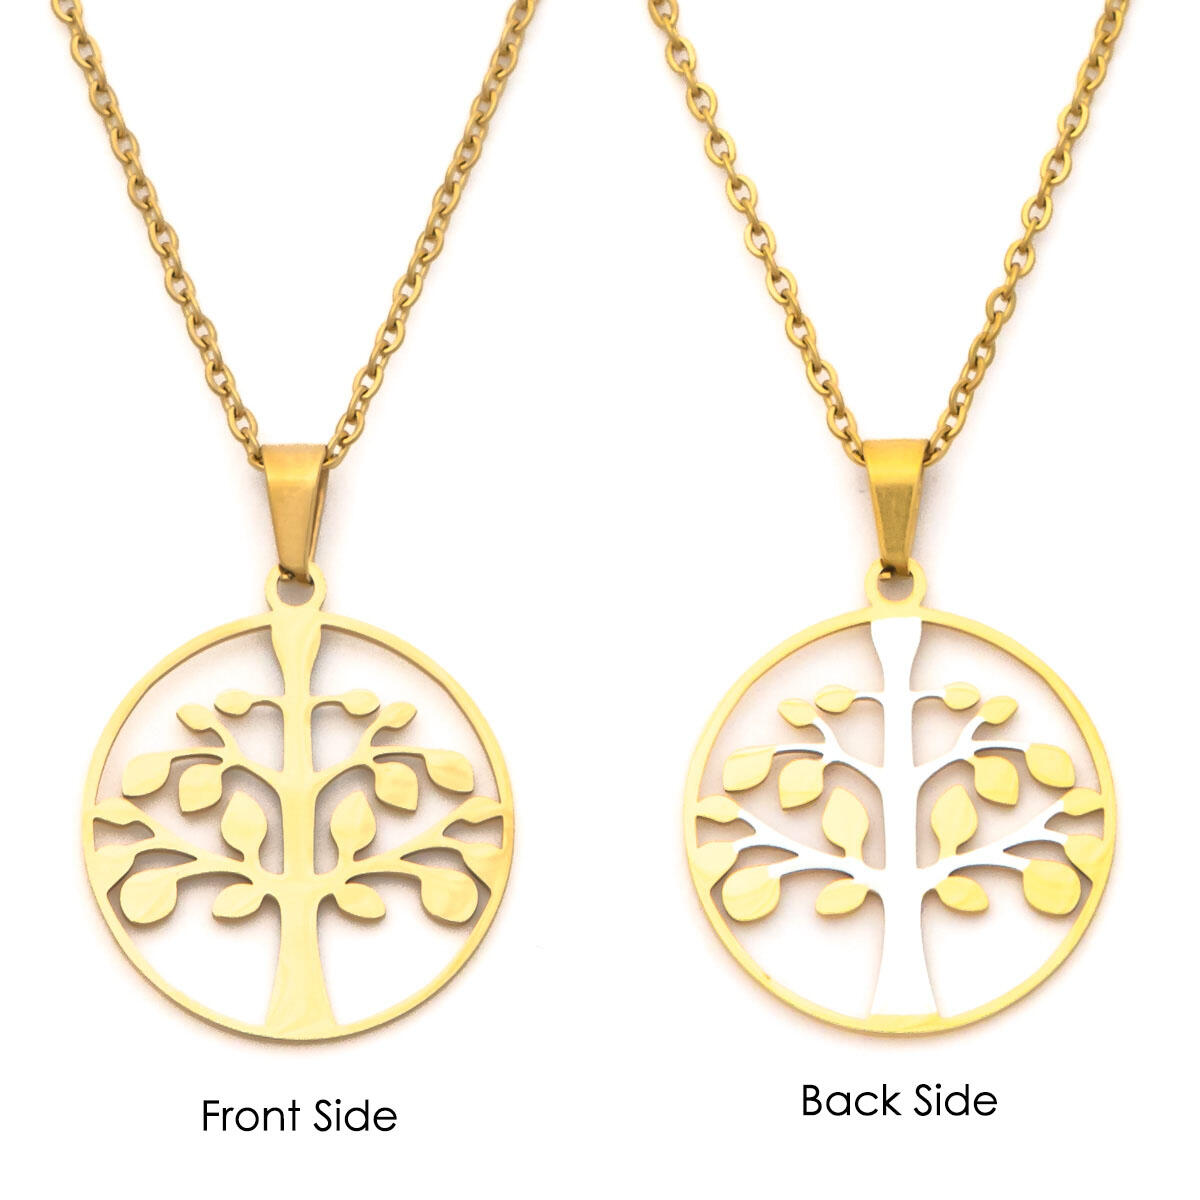 Tree Pendant Necklace Gold Necklace - 14k Gold Family Tree Pendant Necklace Charm Necklace Lucky Necklace for Women (Gold)